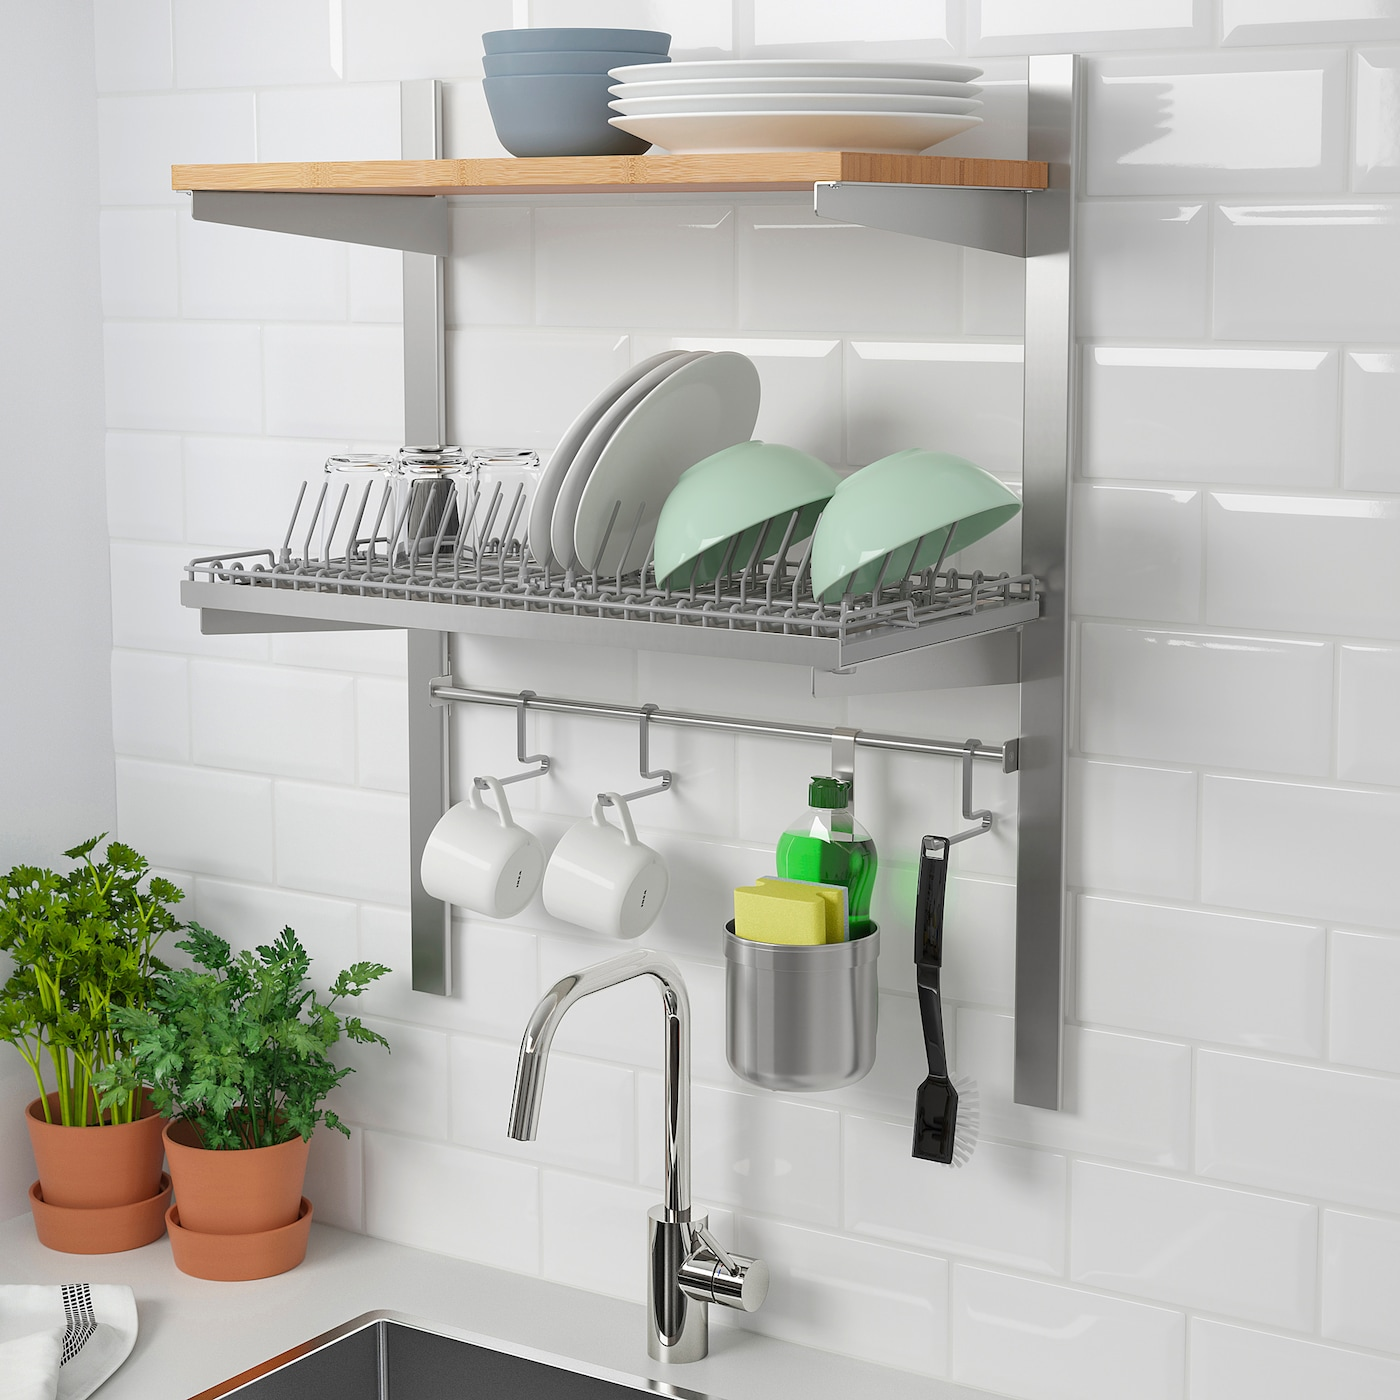 KUNGSFORS Susp rail w shelf/rail/dish dra - stainless steel/ash